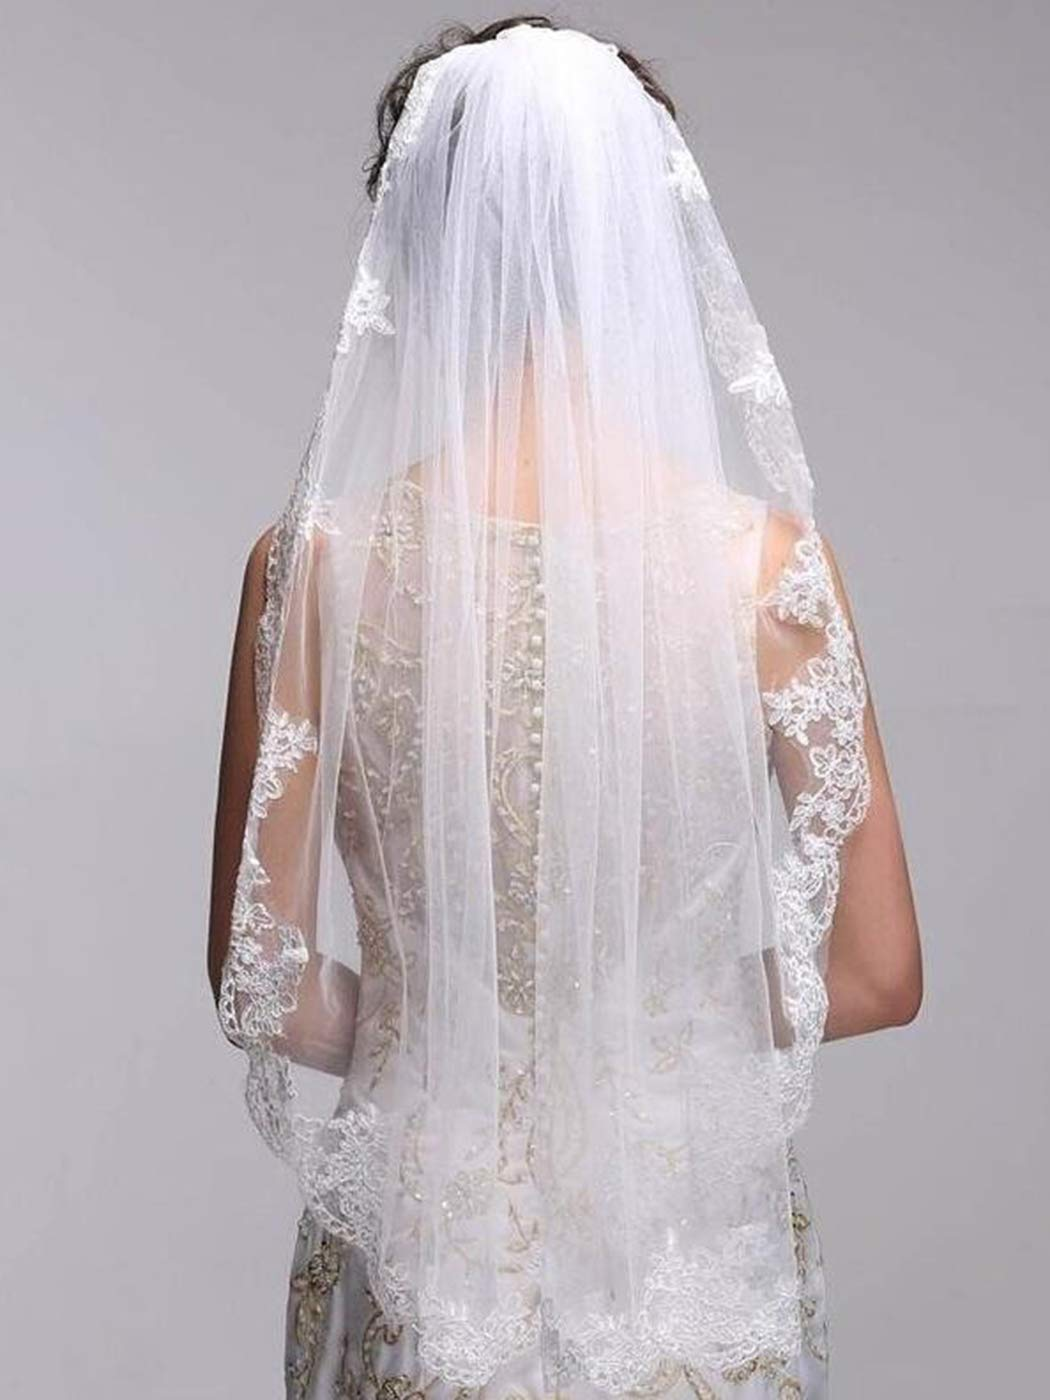 Clairy Bride Wedding Veil Lace Bridal Veils Bridal Tulle Headpieces White Short Hair Jewelry Veils with Cute Edge